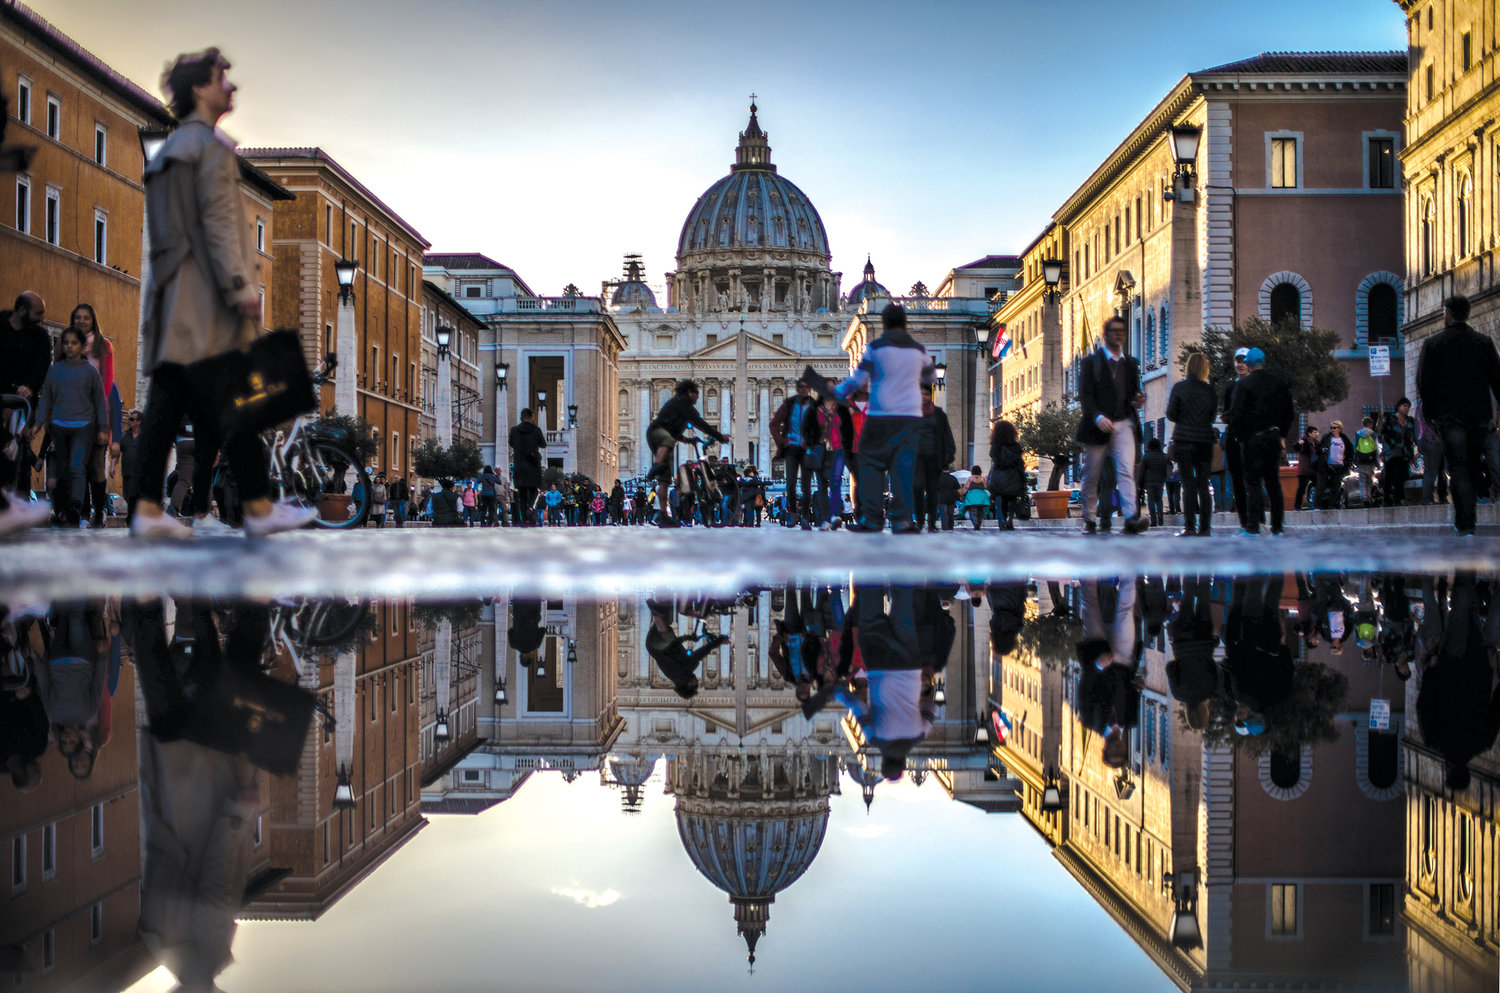 LENS ON VATICAN—